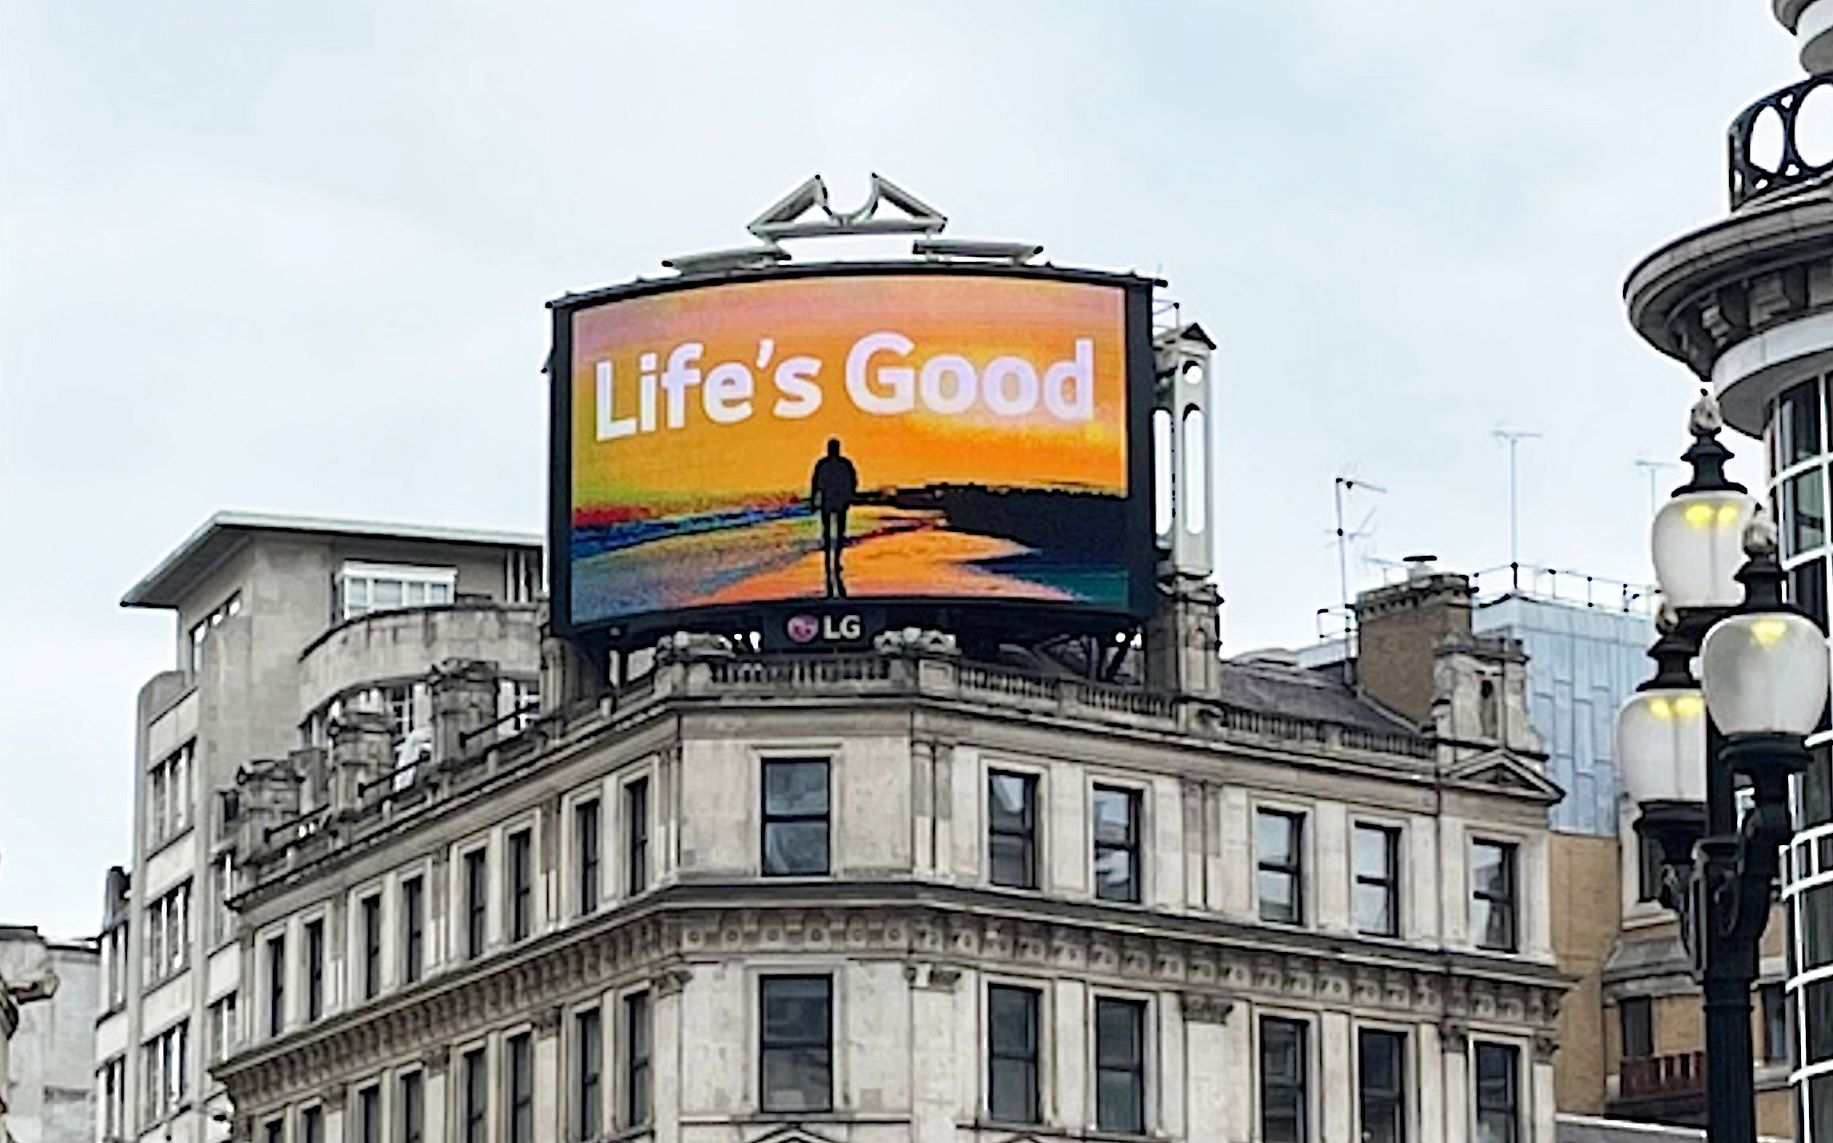 Lifes Good Film London Piccadilly Circus